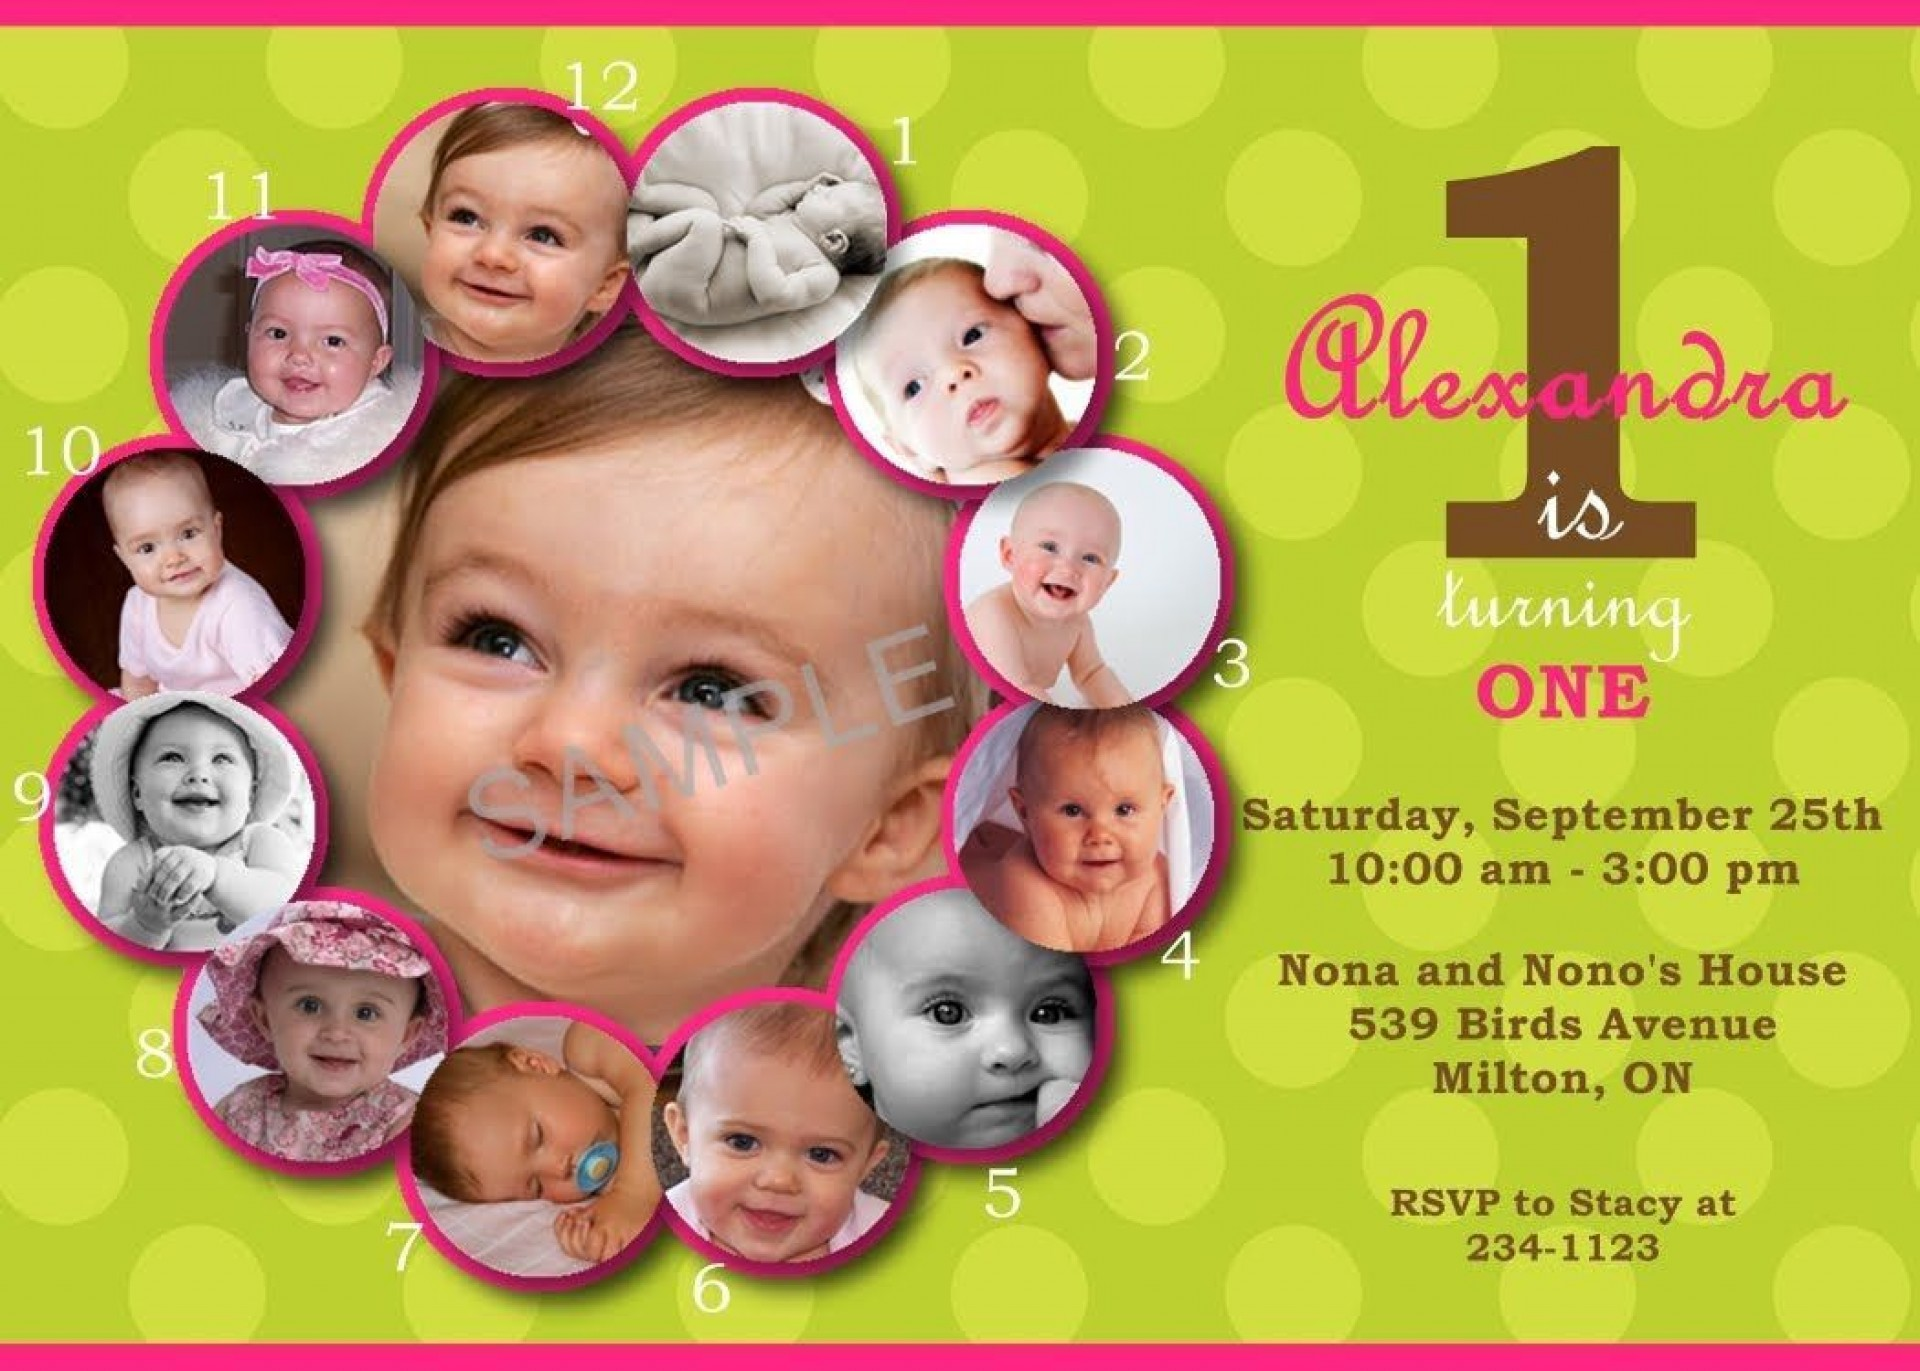 008 Wondrou 1st Birthday Invitation Template Concept  Background Design Blank For Girl First Baby Boy Free Download Indian1920